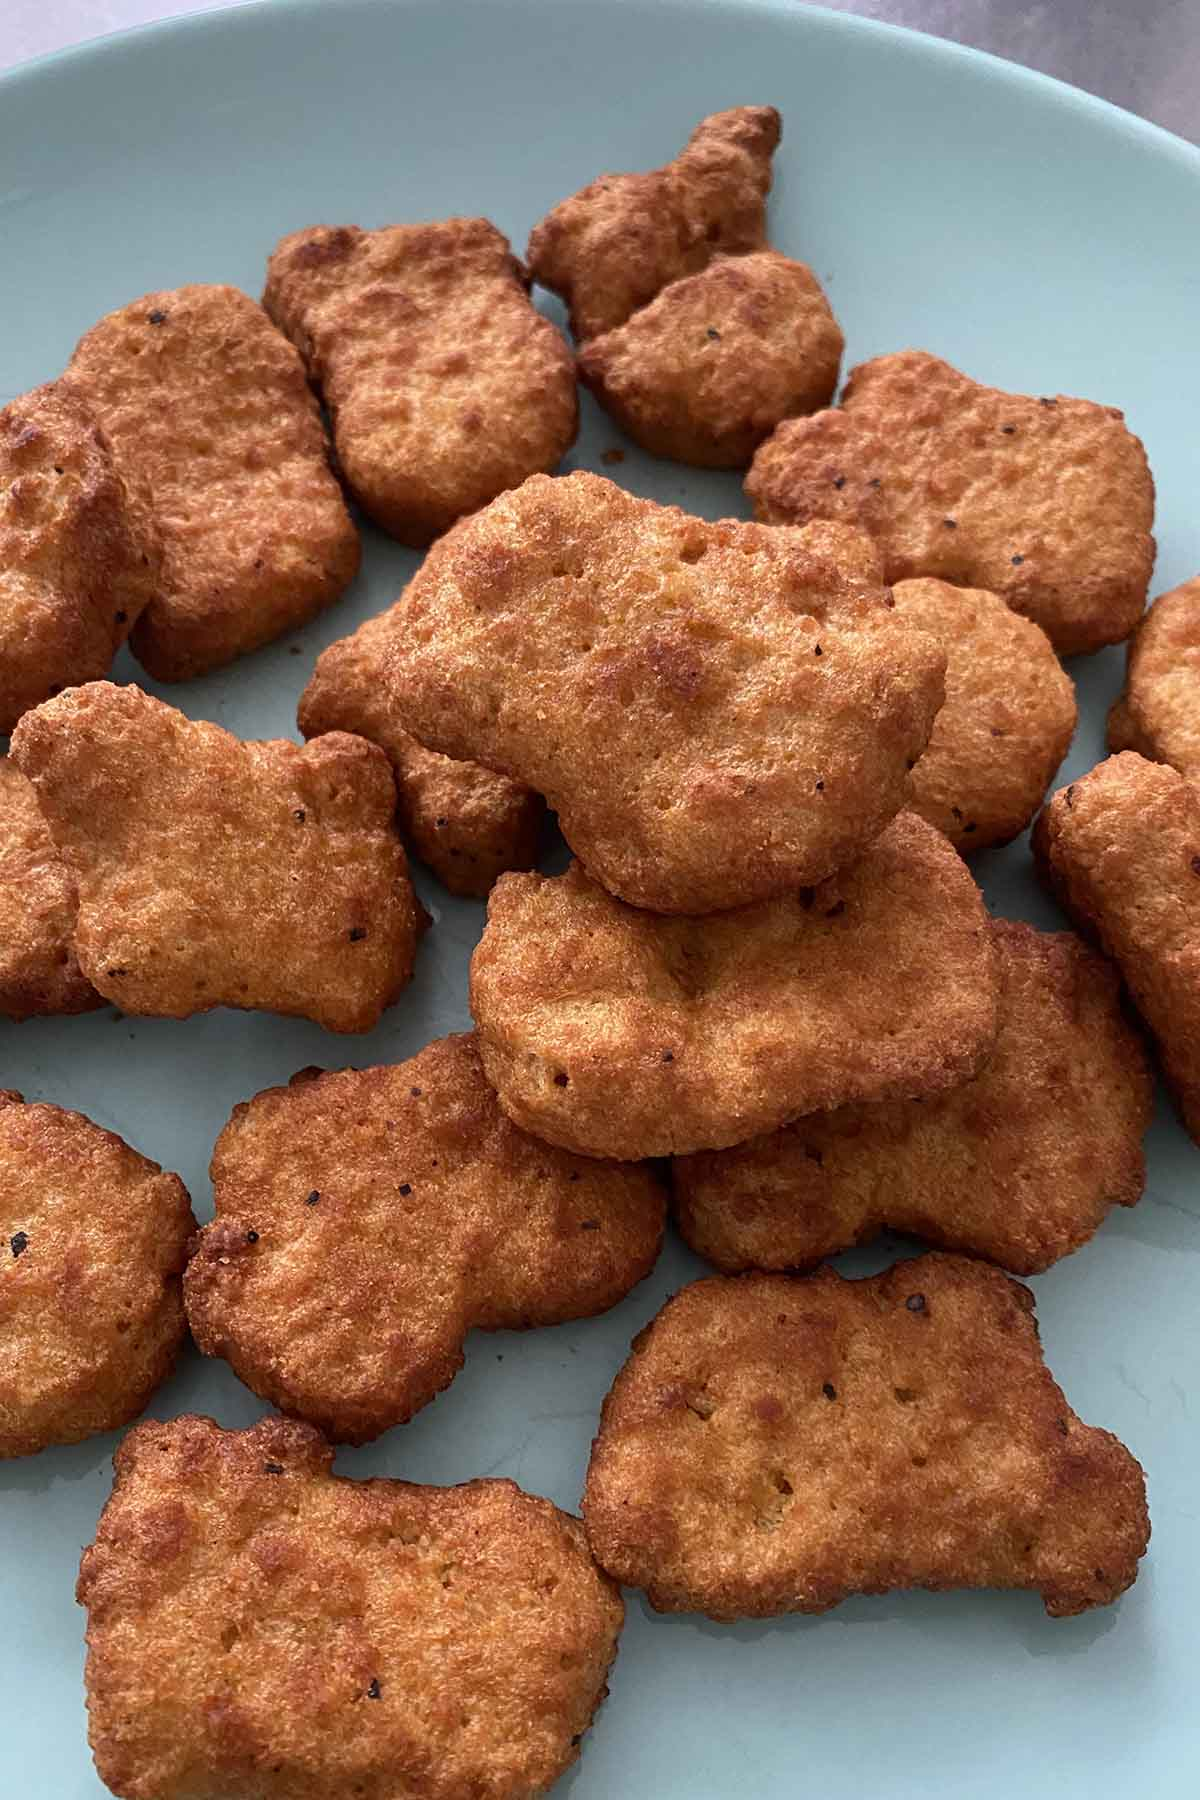 Simulate Chicken Nuggs on a blue plate after air frying